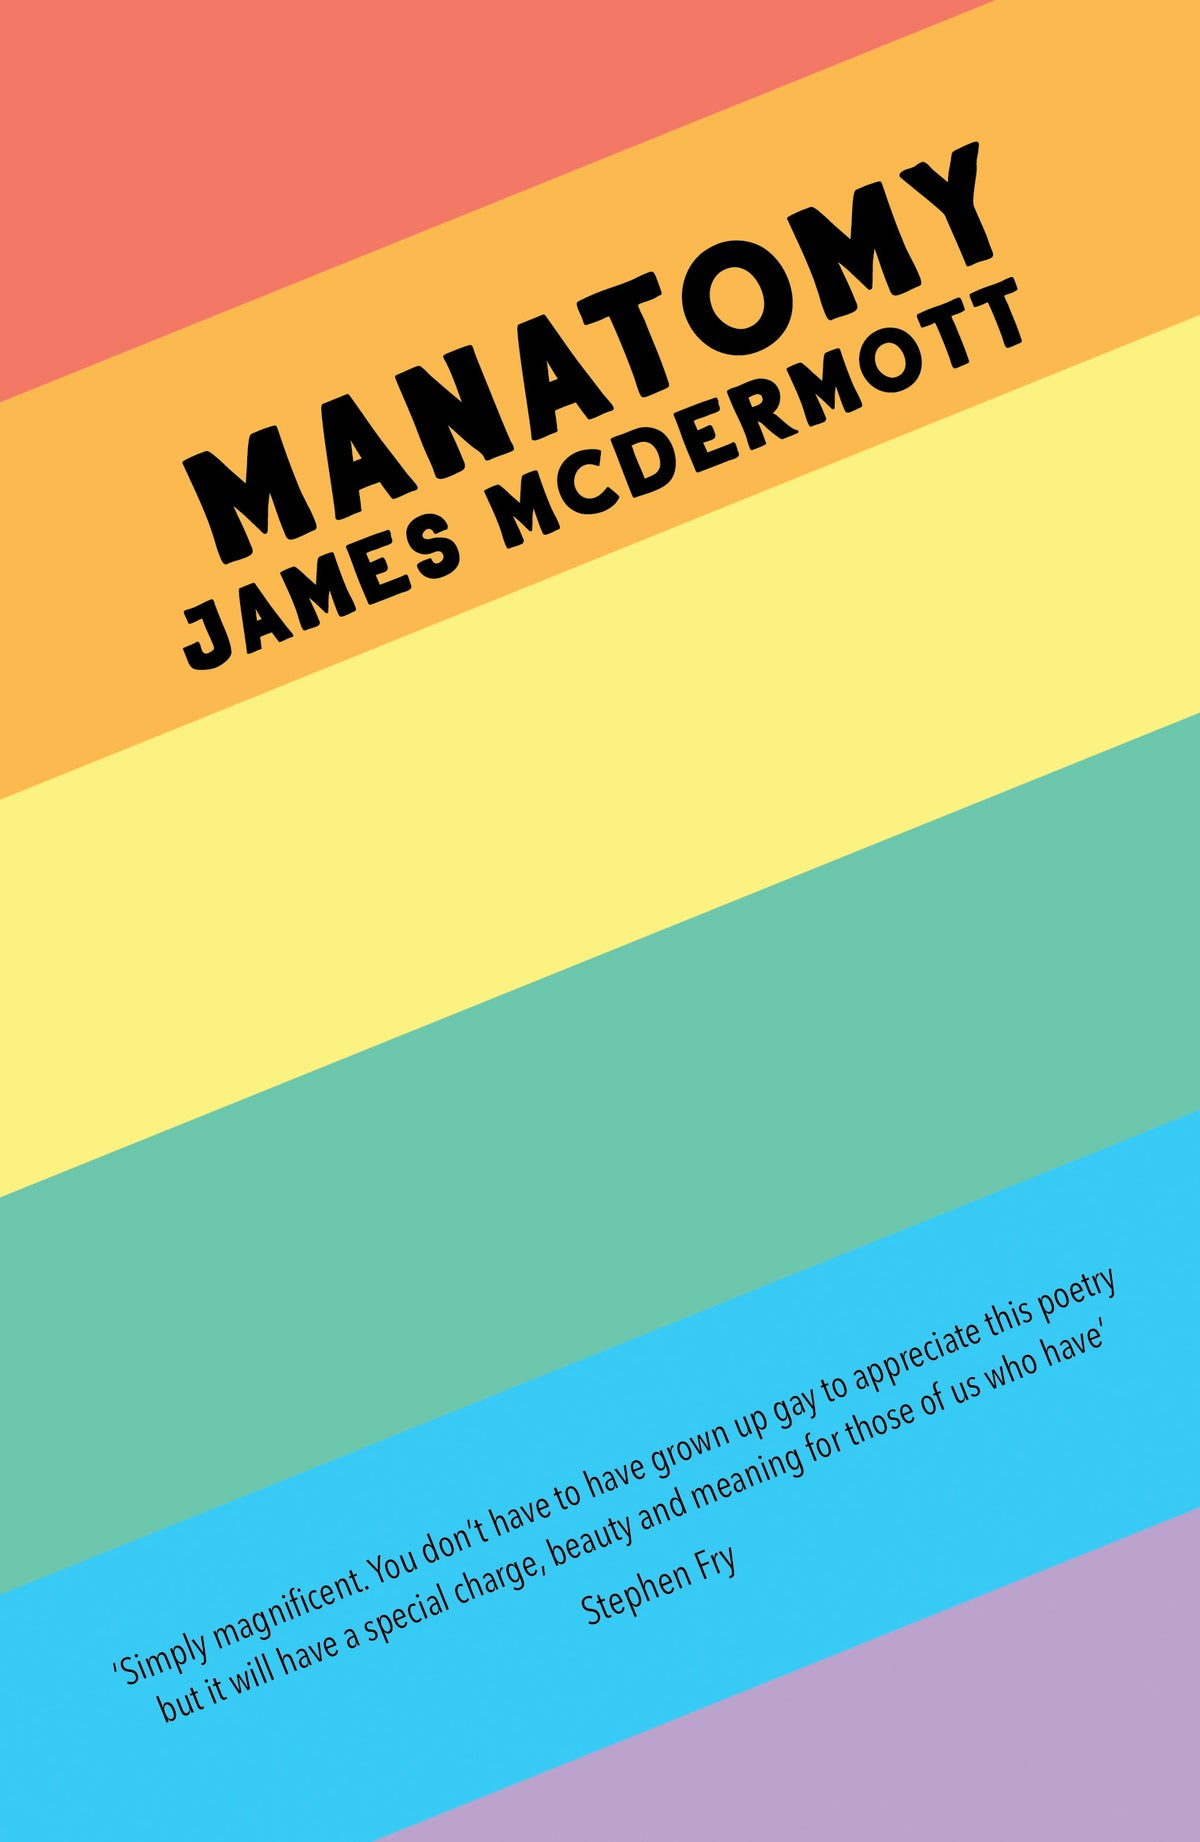 Image of MANATOMY by James McDermott